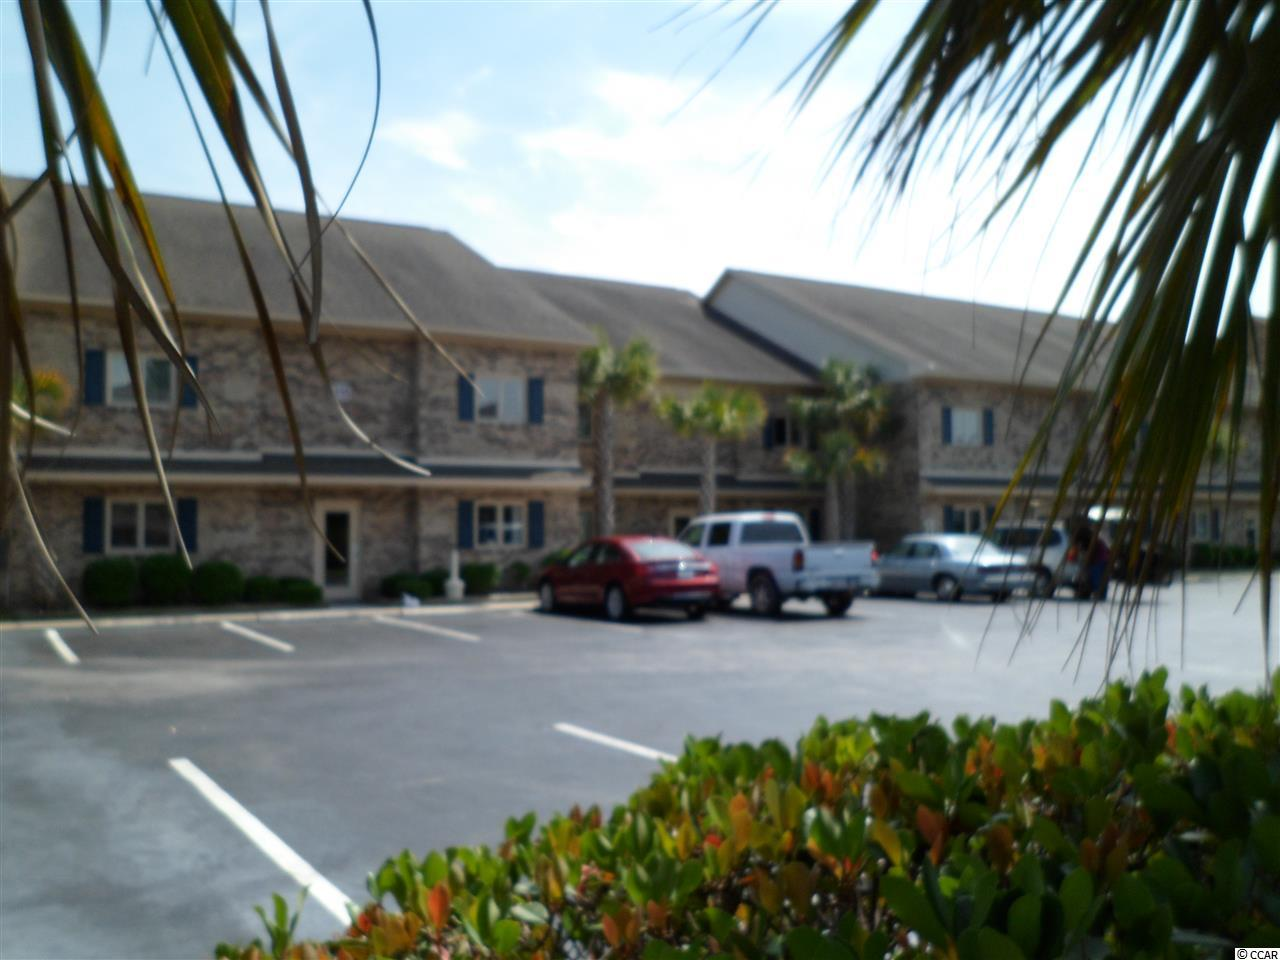 This condo was used as a vacation home and never rented. Fully furnished with all you need to enjoy life on the East Coast. Top floor Condo, with full kitchen, large bar/eatery, built in murphy bed, skylight in living room and private balcony overlooking pond. Large storage area that can double into an extra area for another bed. Current owner has a bed in this area with plenty of room for other items. Simply a must see!! Call today to schedule a showing.